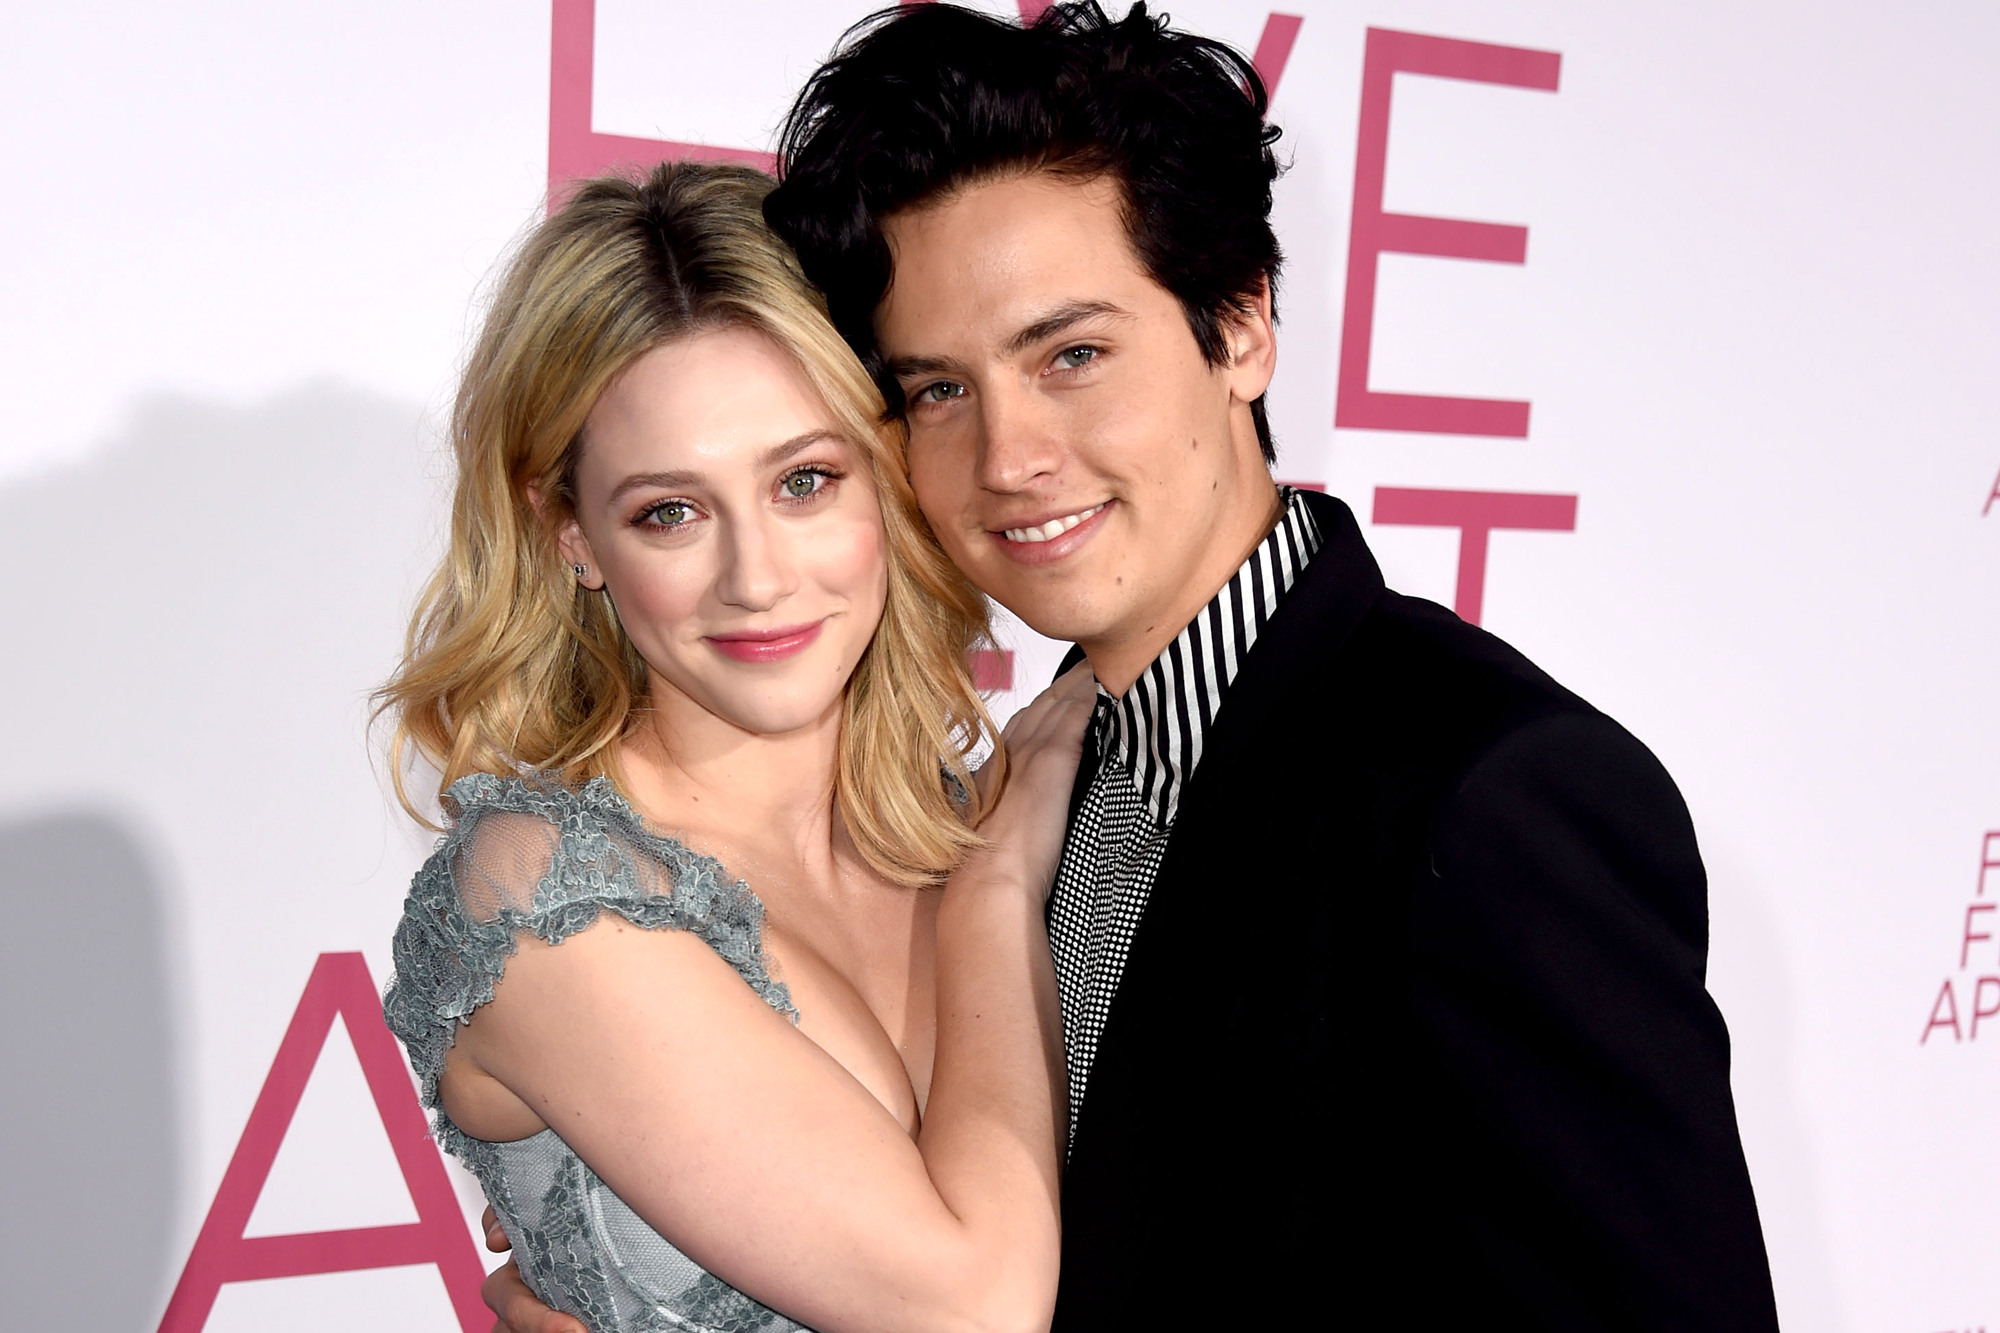 "LOS ANGELES, CALIFORNIA - MARCH 07: Lili Reinhart (L) and Cole Sprouse arrive at the premiere of CBS Films' ""Five Feet Apart"" at the Fox Bruin Theatre on March 07, 2019 in Los Angeles, California. (Photo by Kevin Winter/Getty Images)"